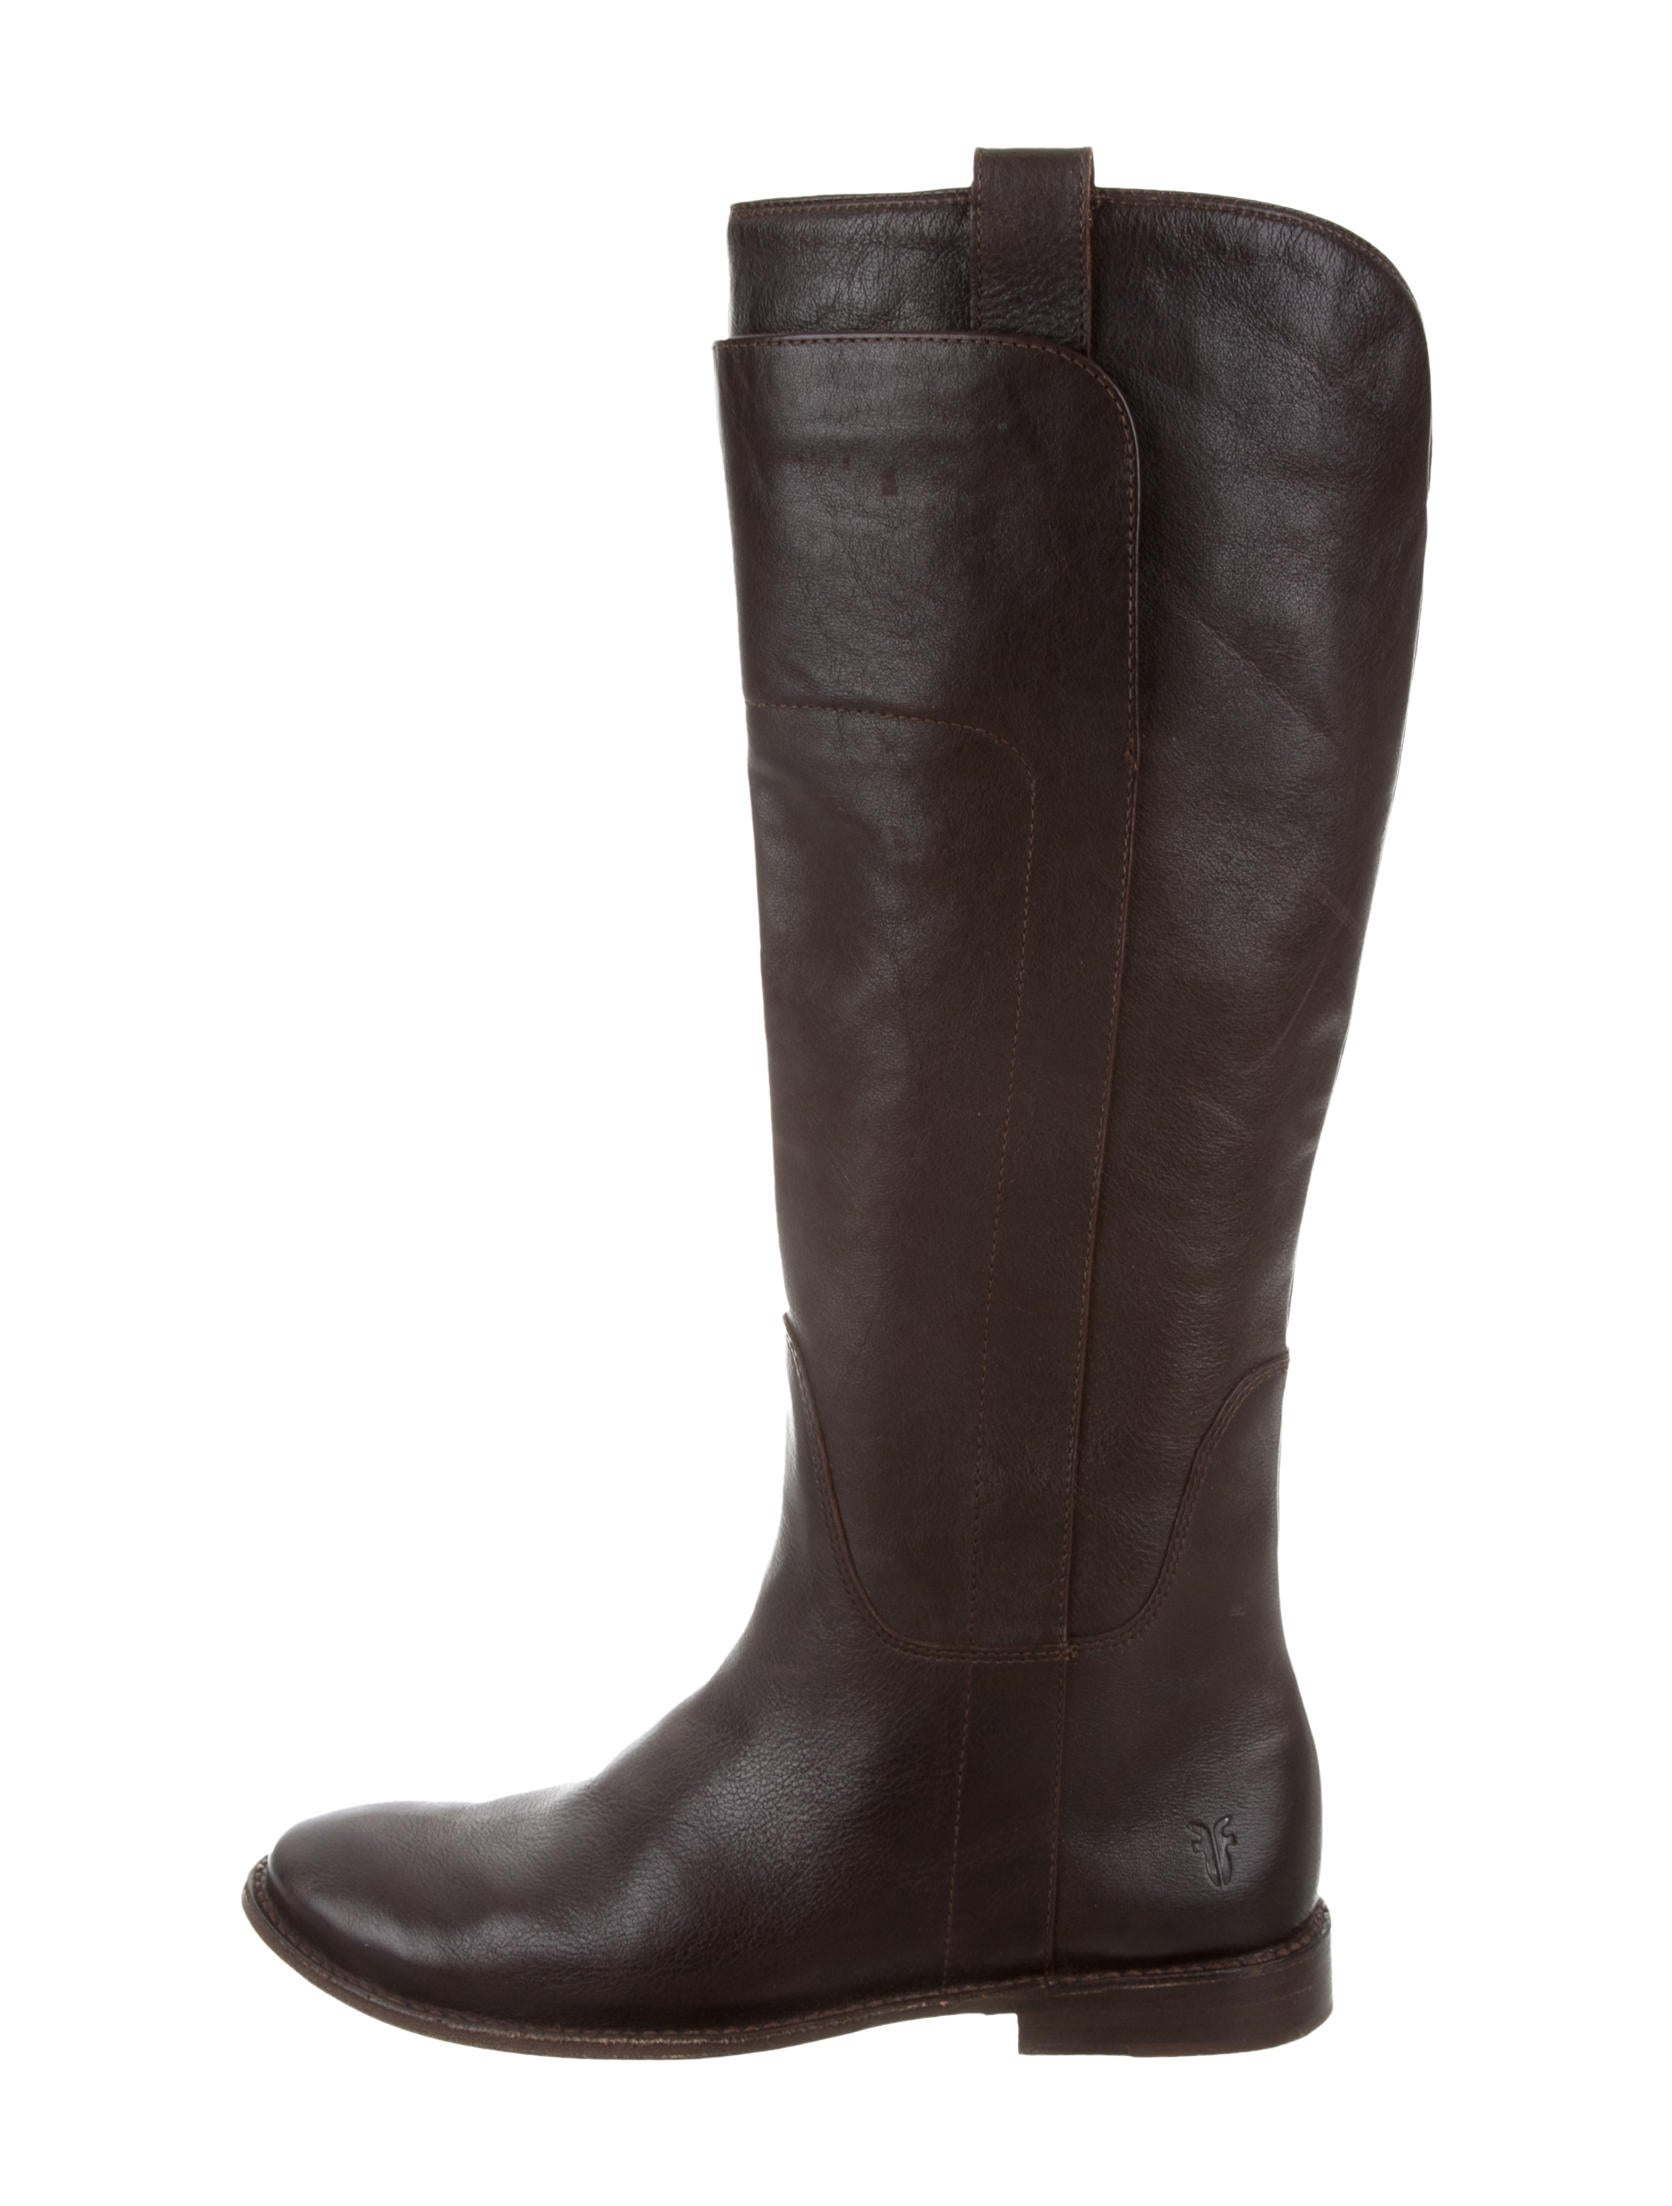 frye leather knee high boots shoes wf821049 the realreal